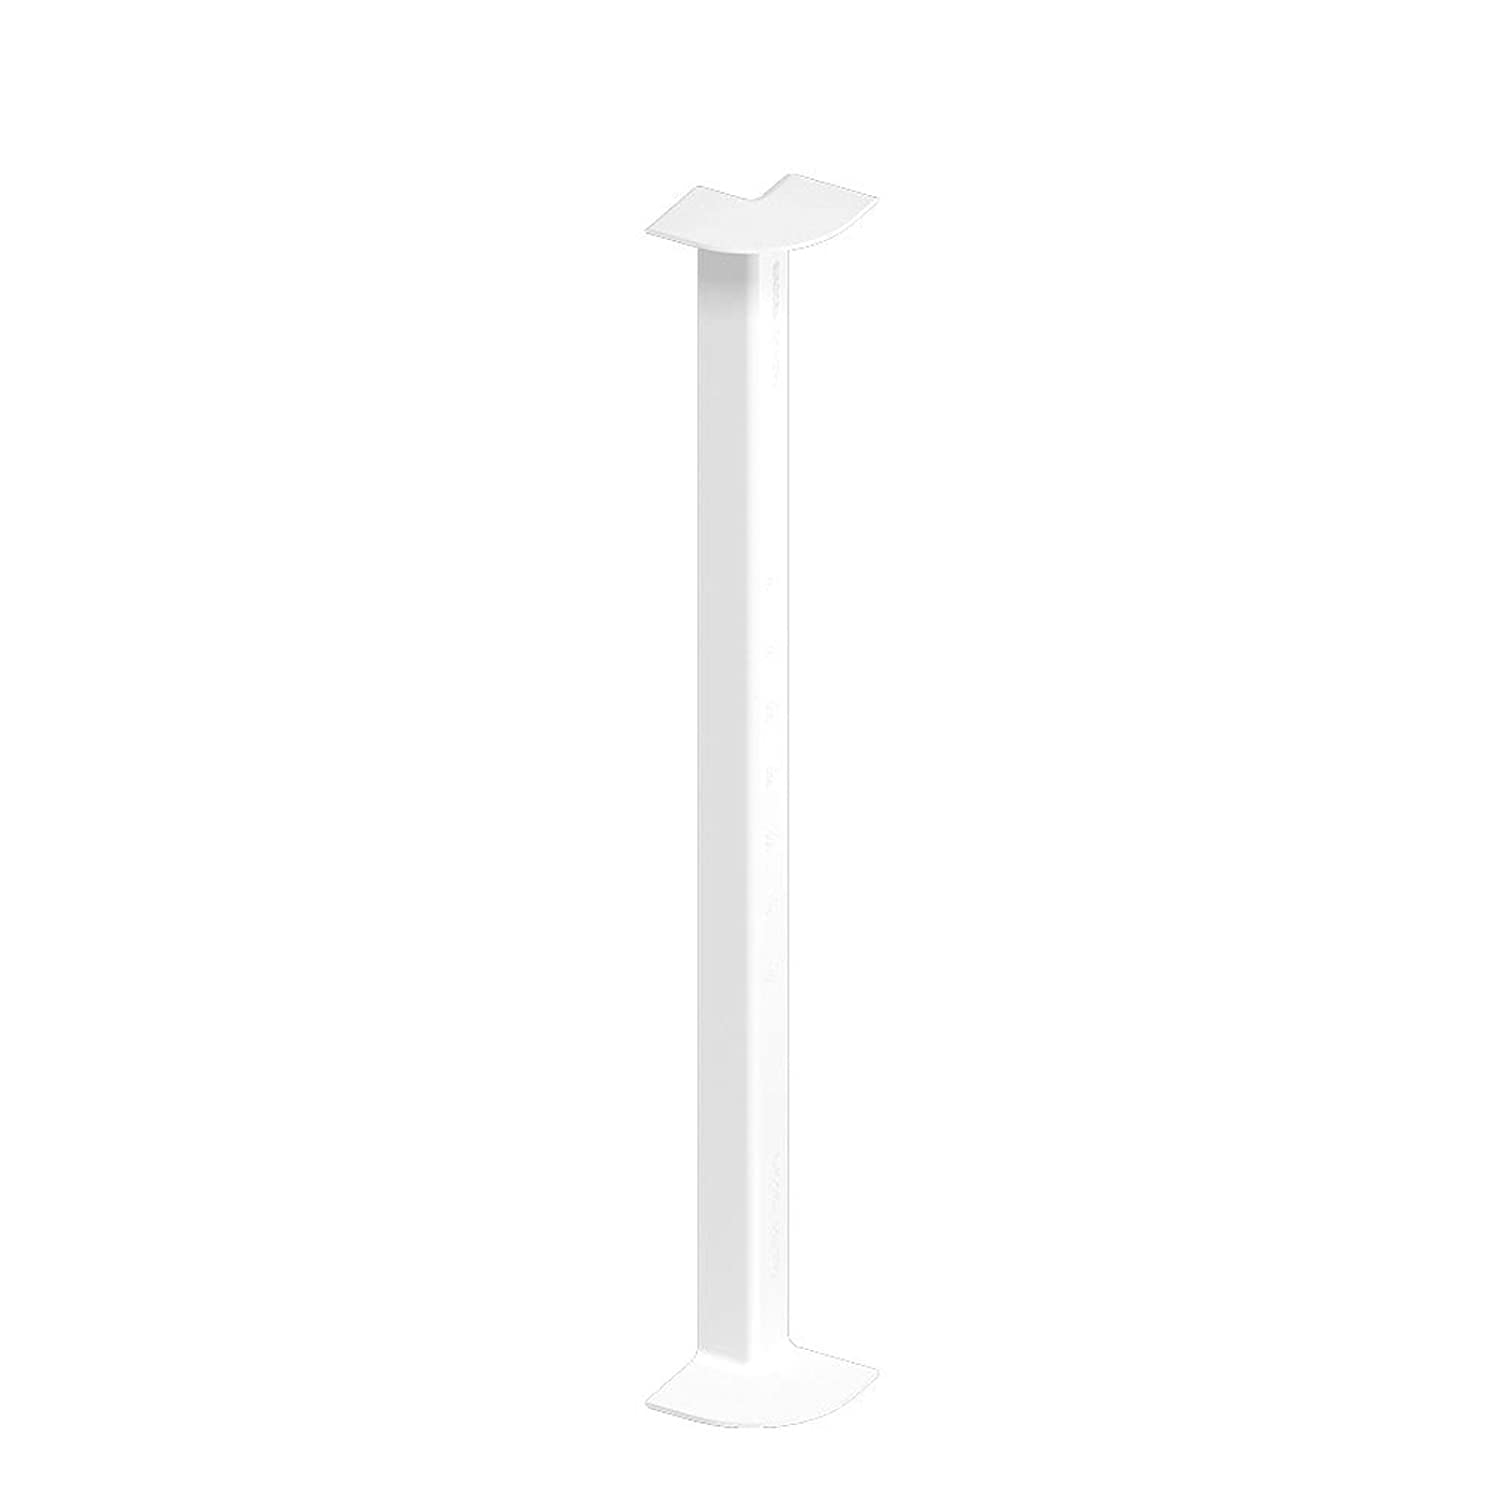 White Fascia Board 90° Internal Corner Trim for Flat PVC-u Plastic Roof Fascia Eurocell